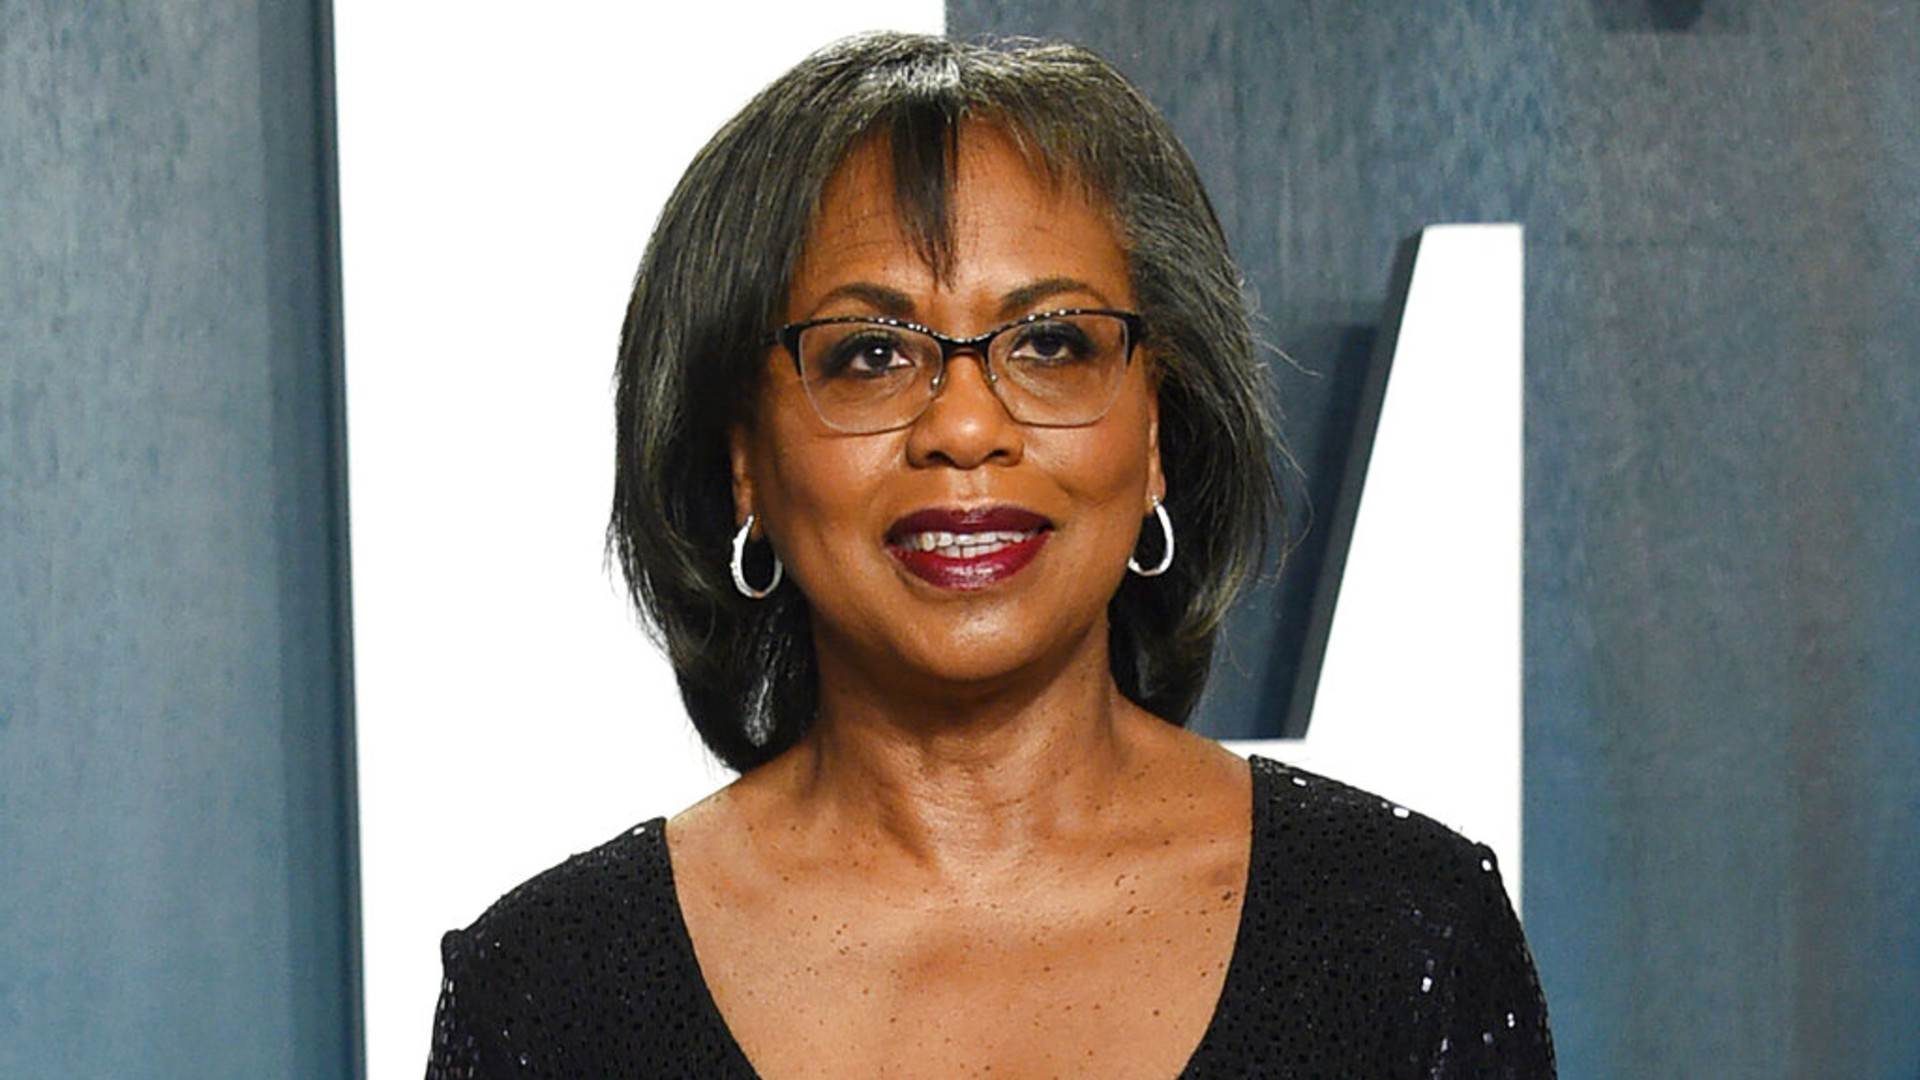 In this Feb. 9, 2020, file photo, Anita Hill arrives at the Vanity Fair Oscar Party in Beverly Hills, Calif. (Photo by Evan Agostini/Invision/AP, File)